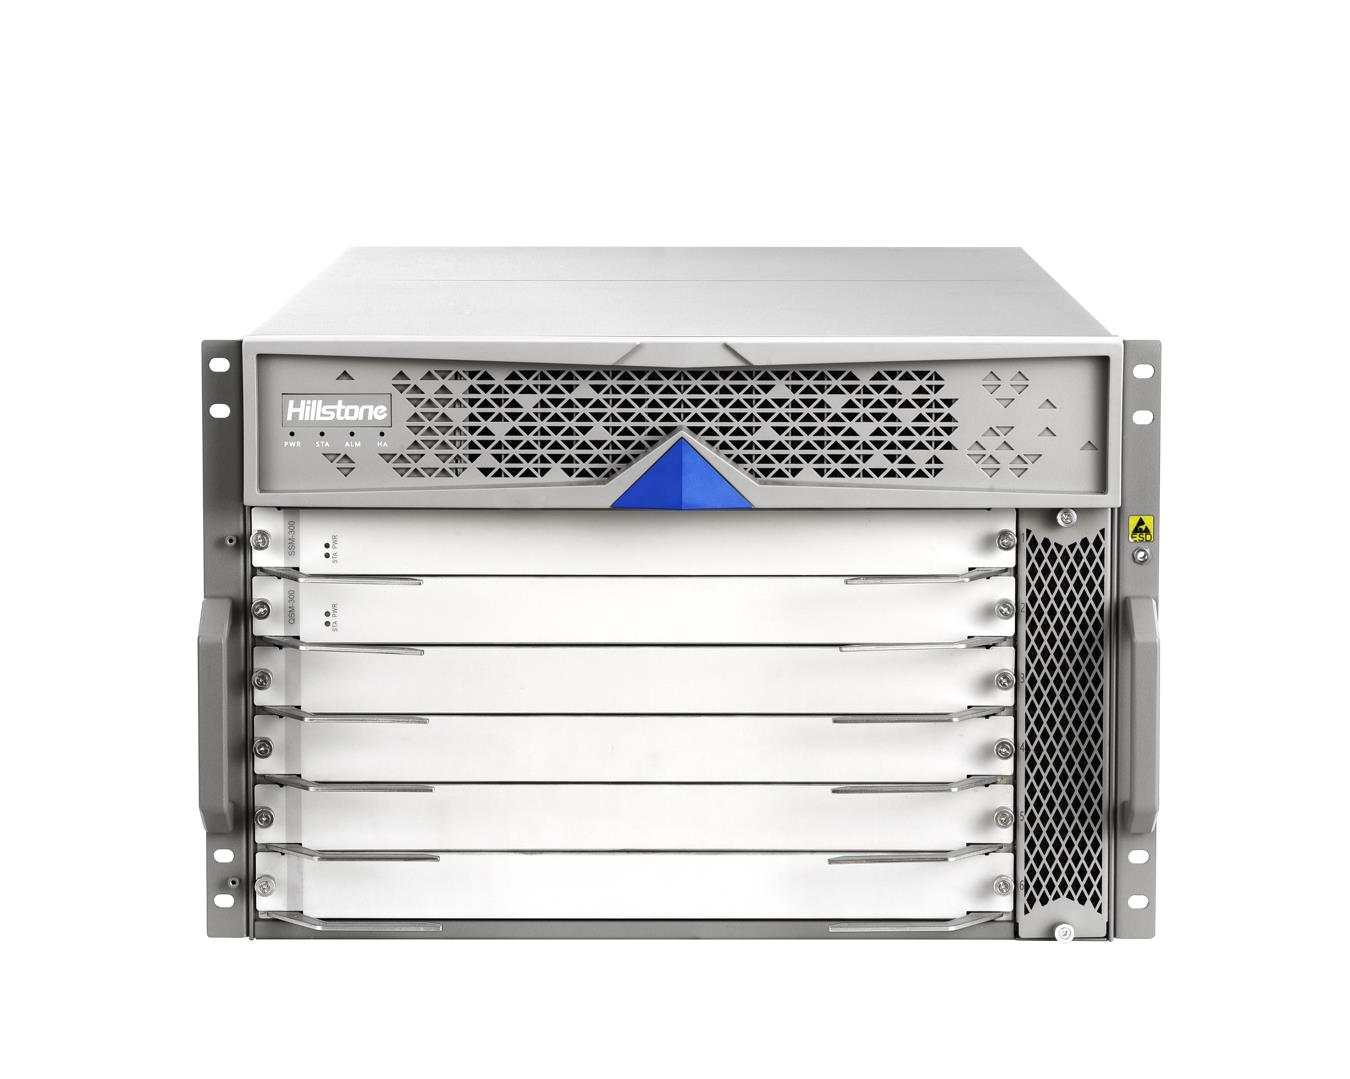 Product picture of Hillstone X-Series Data Center Firewall